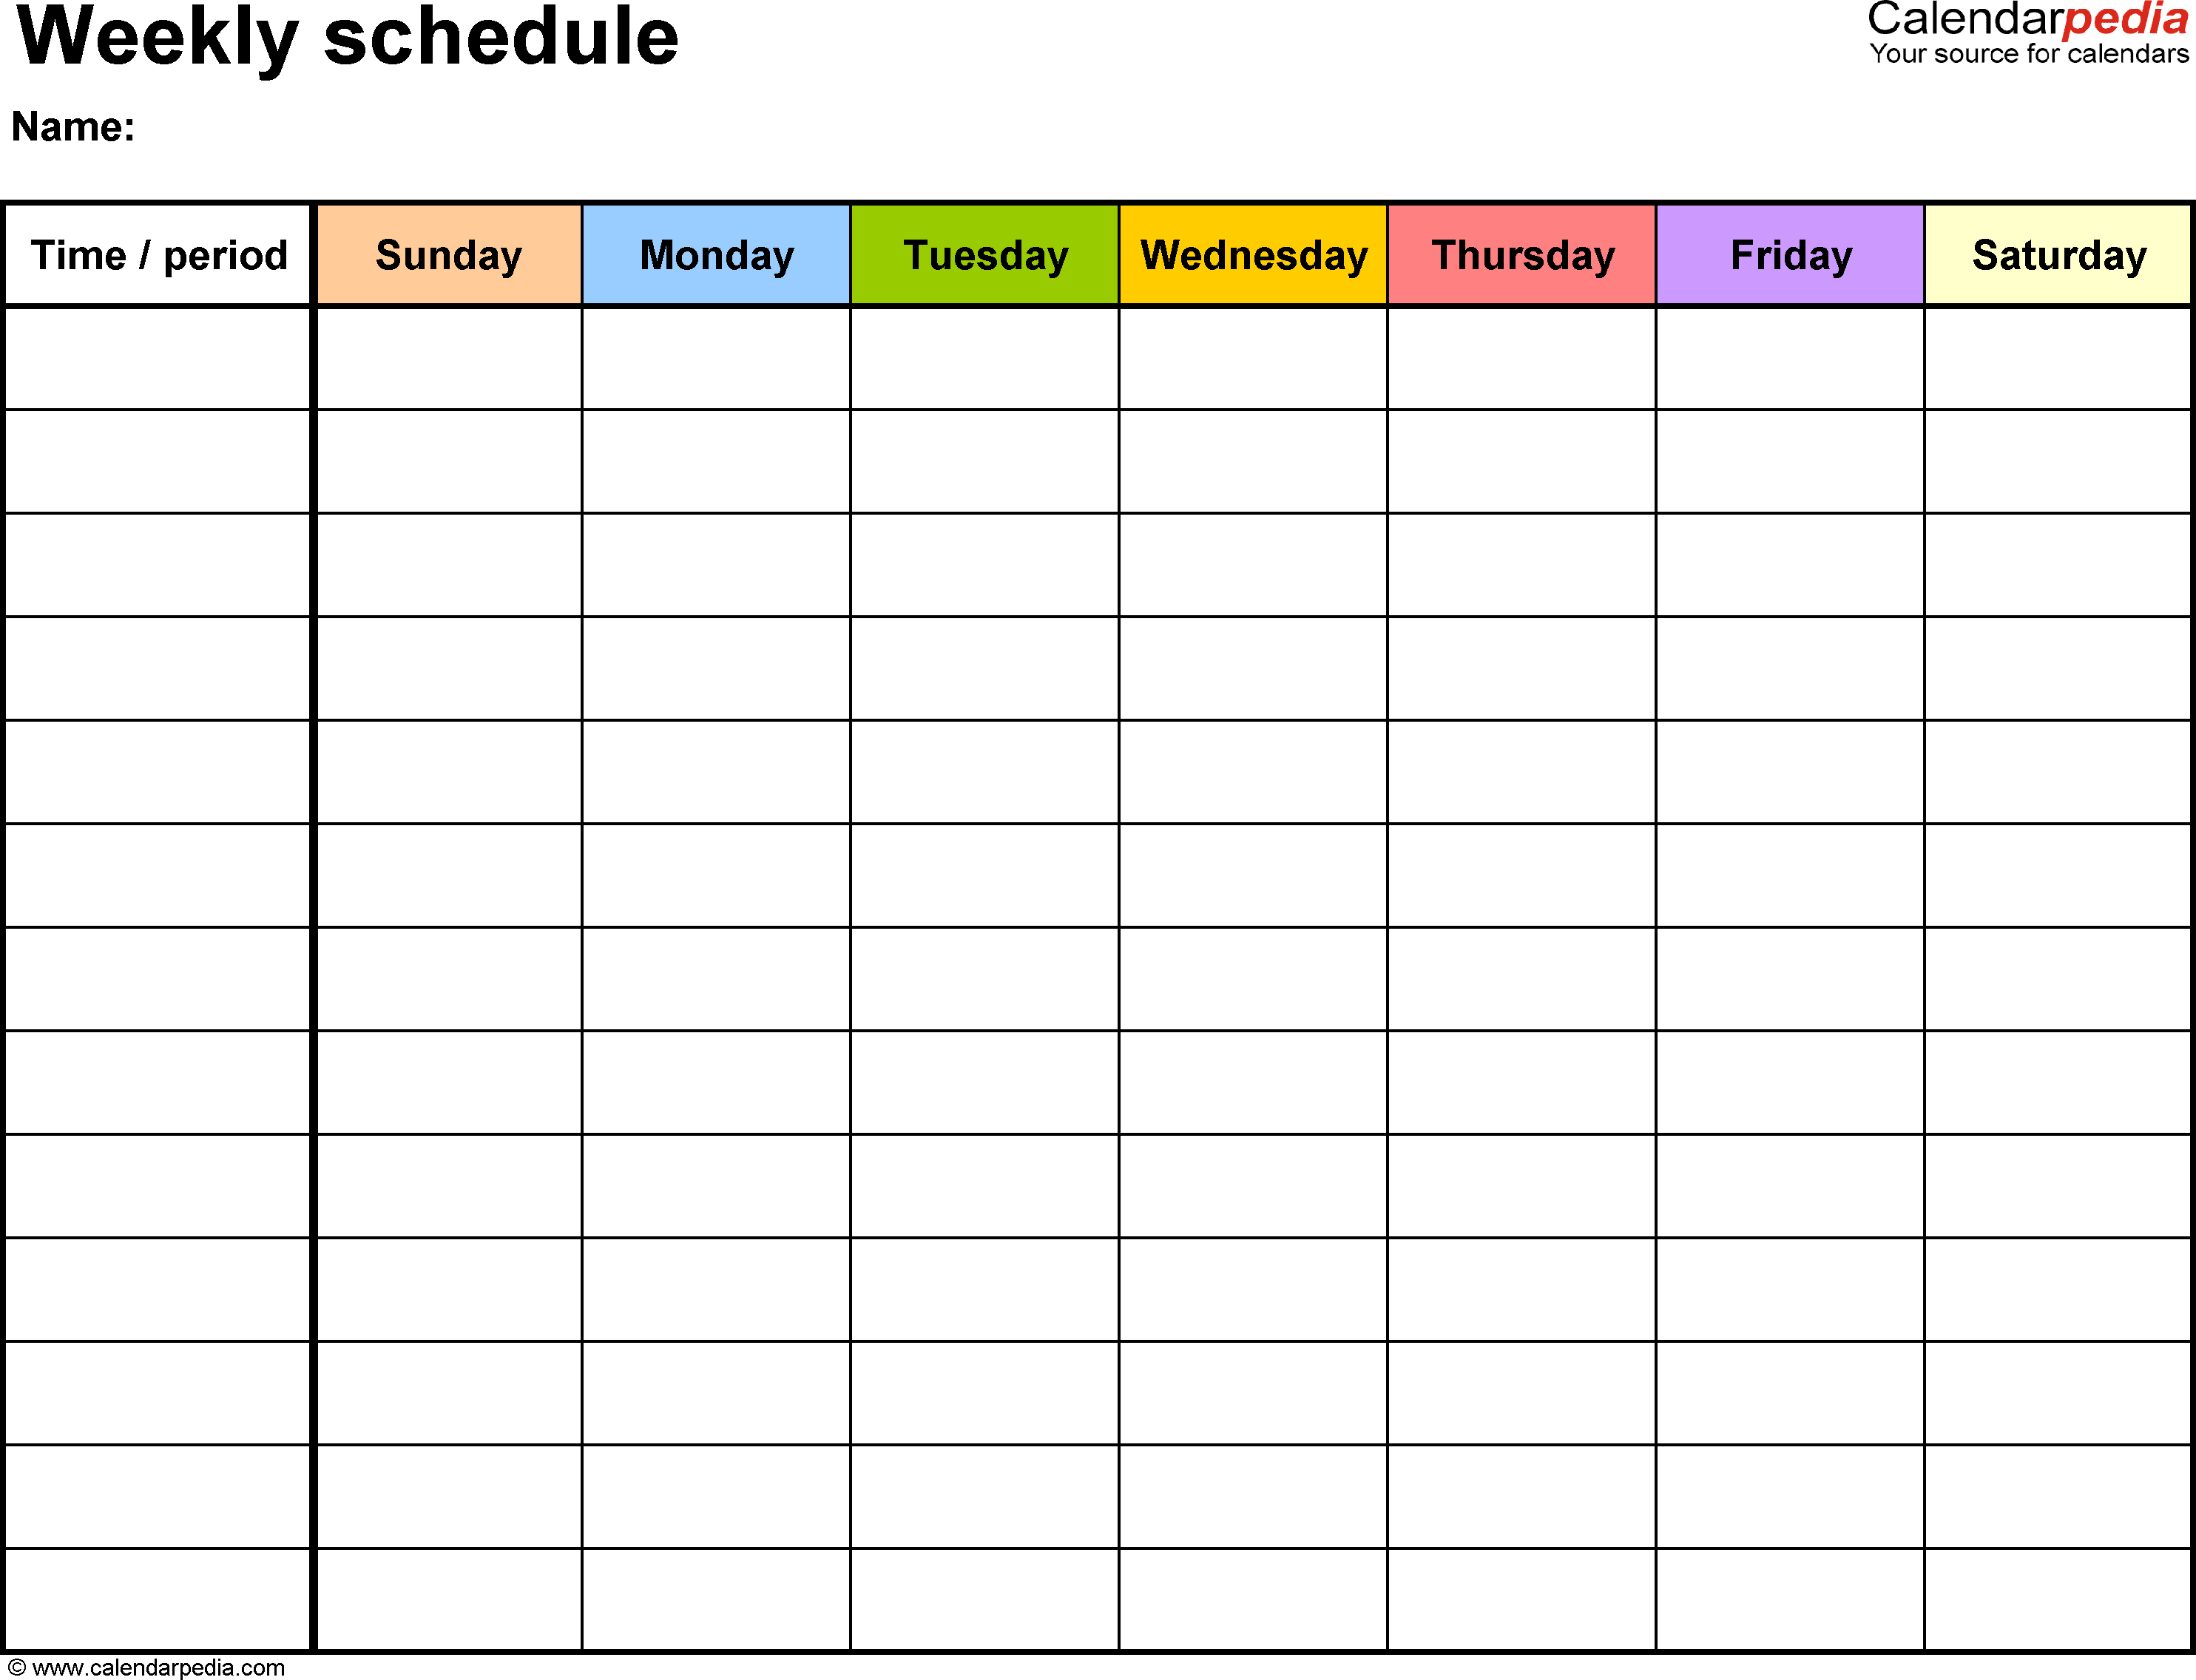 Weekly Schedule Template Pdf Free Templates For Preschool Lesson inside Free Preschool Template For Schedule